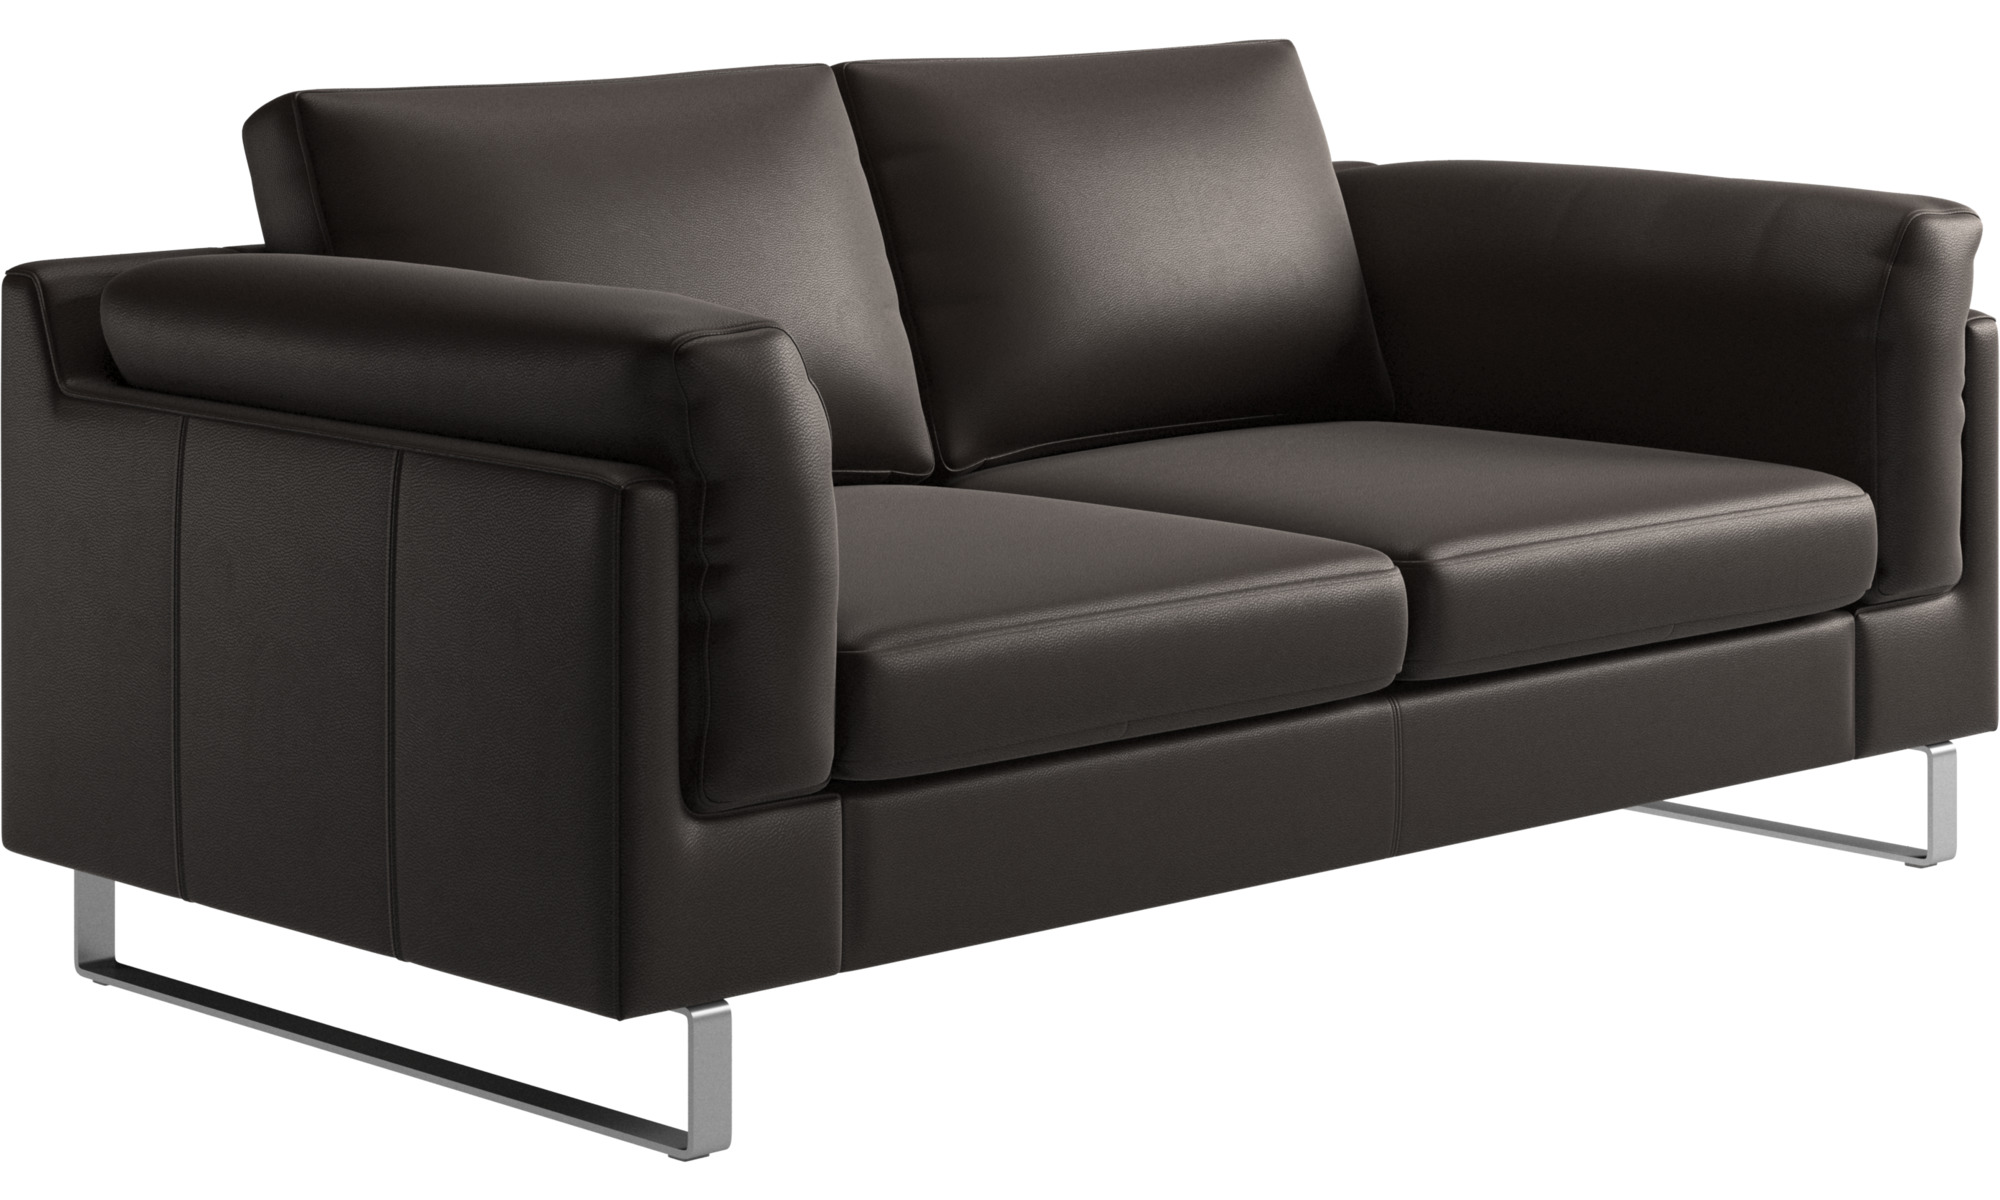 2 Seater Sofas Indivi Sofa Brown Leather